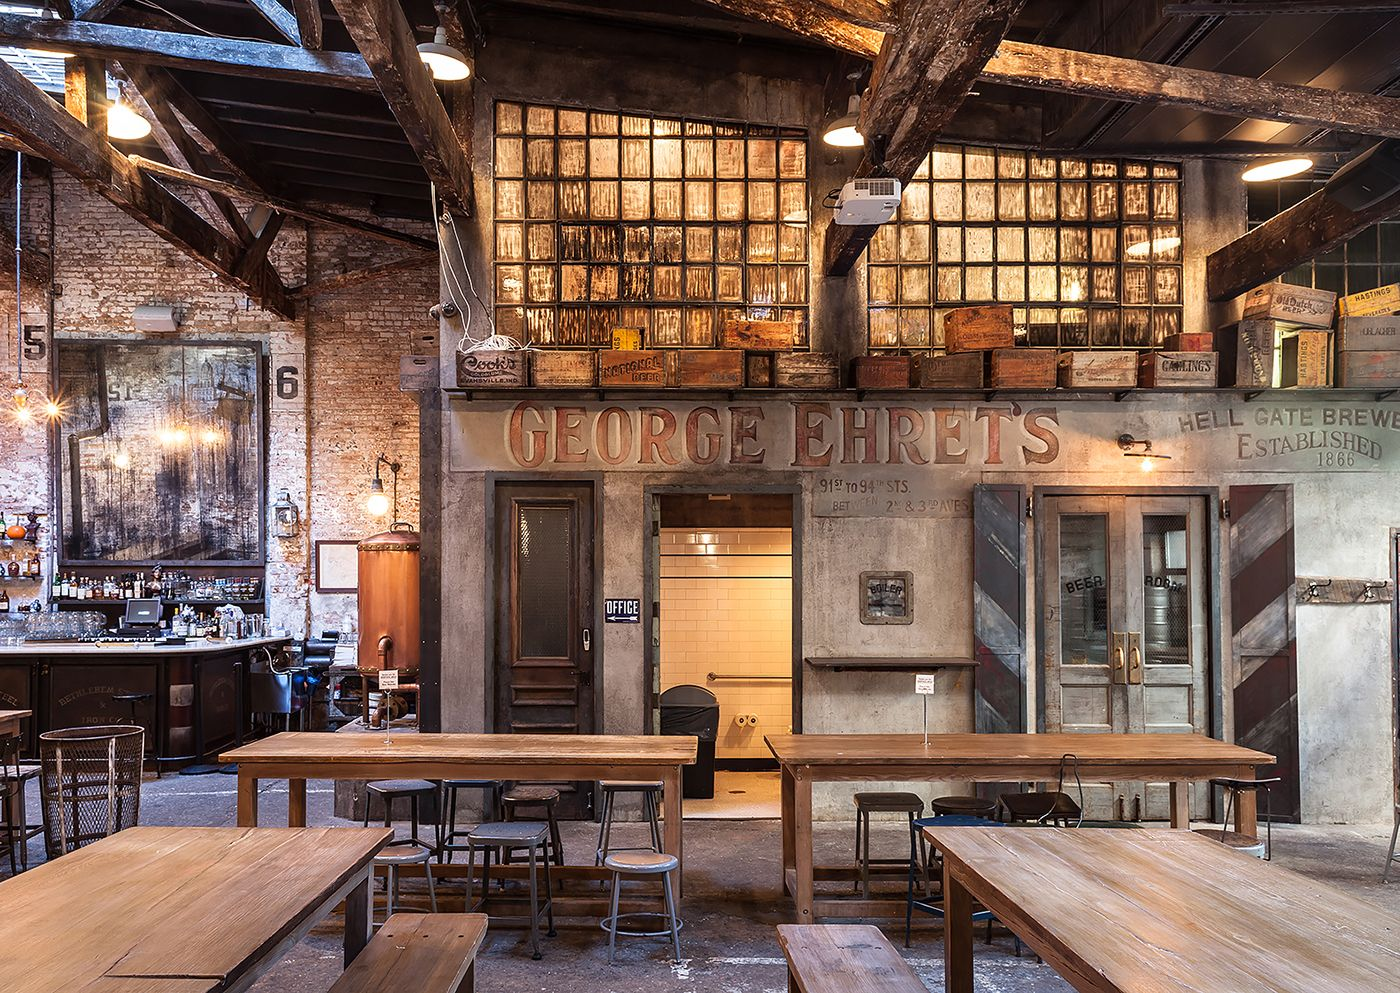 houston hall is a beer hall located in new york city's west